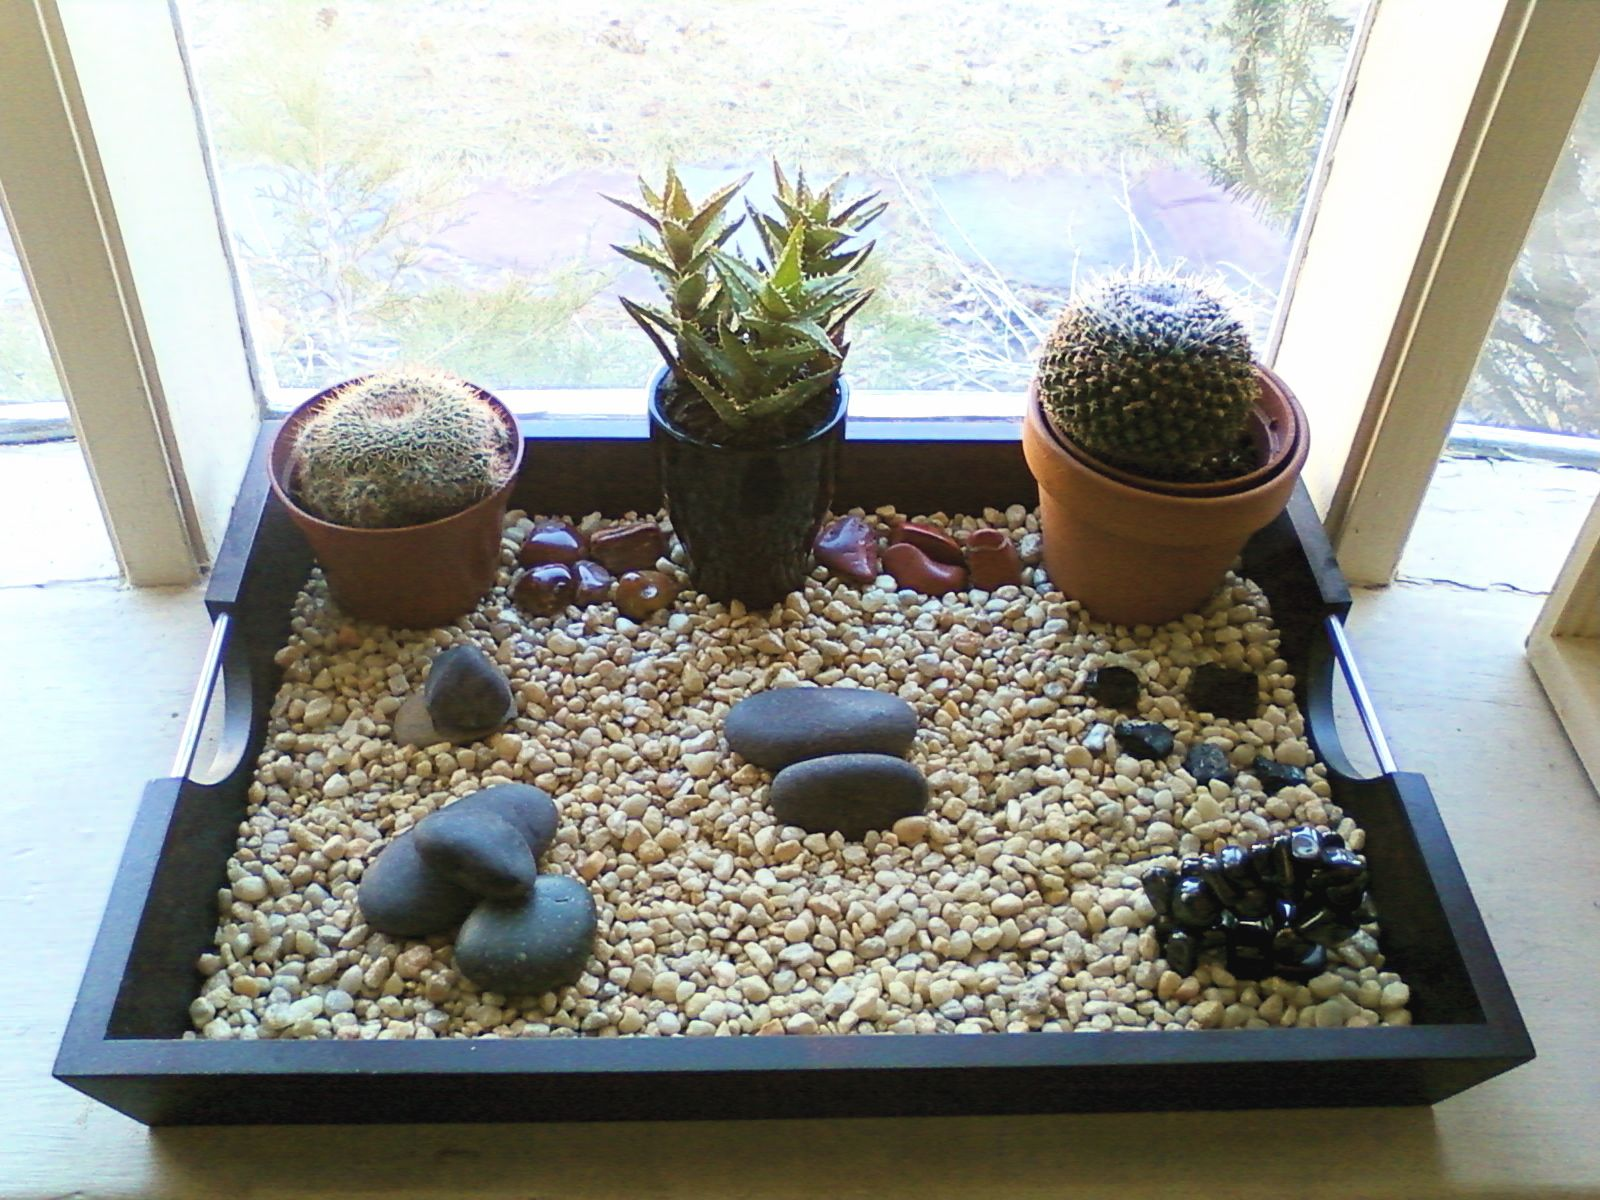 indoor rock garden ideas. Check Out Various Impressive Indoor Rock Garden Japanese Design Ideas From Jessica Griffin To Decorate Your Space. N